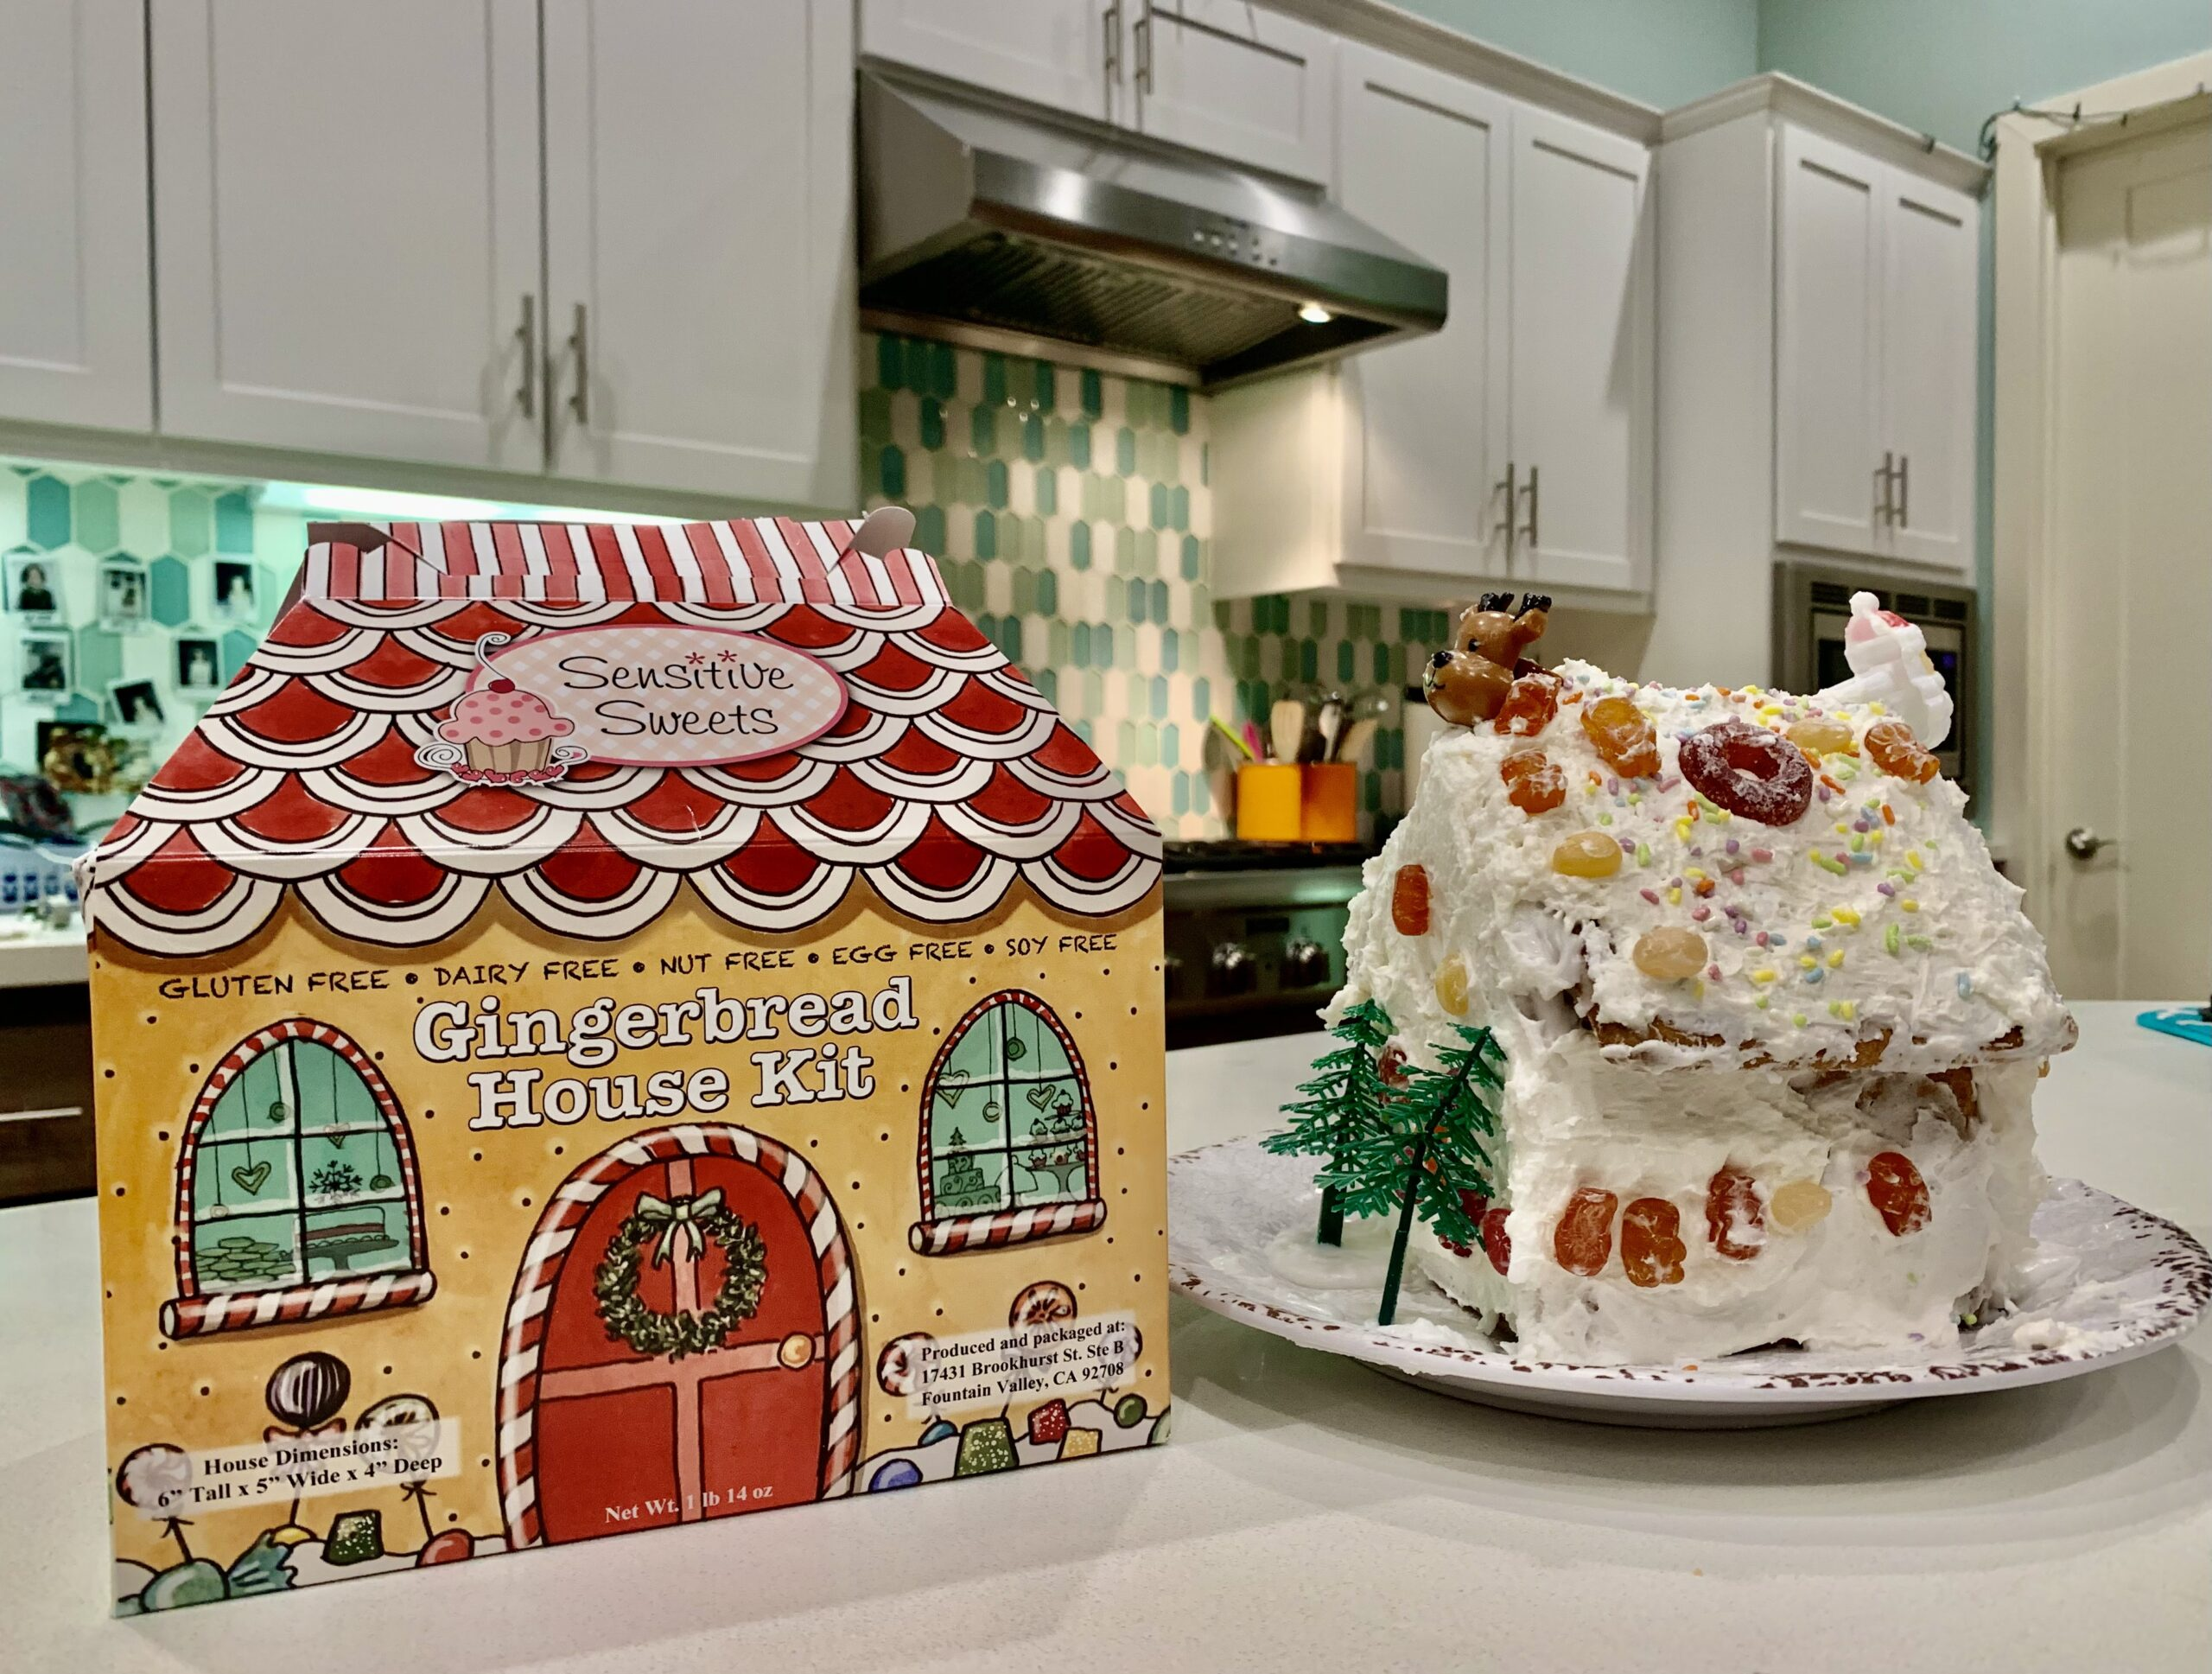 gluten free bakery gingerbread house kit sitting on counter